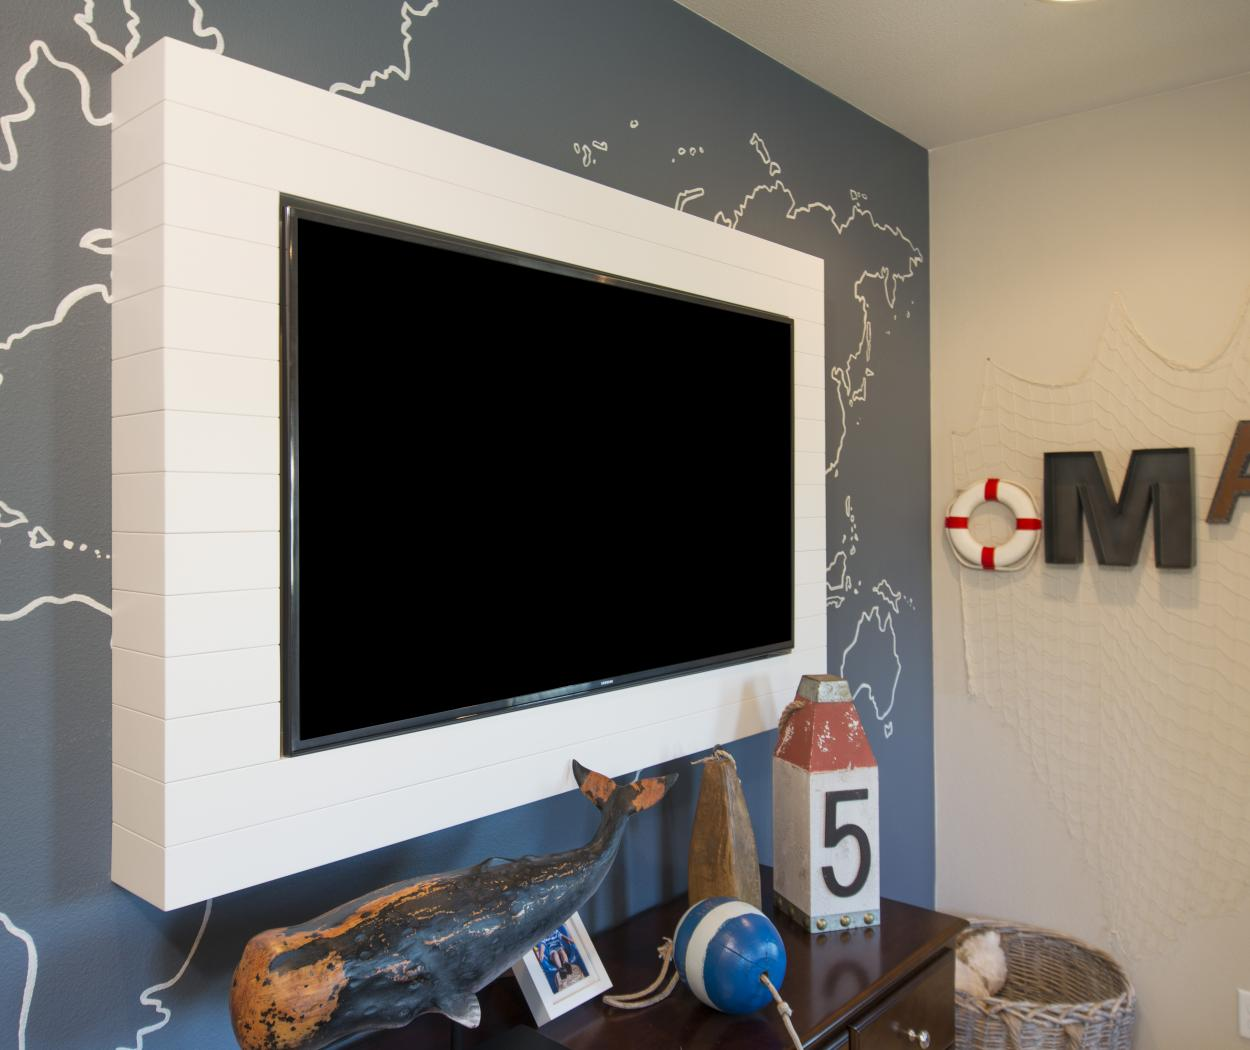 Beautiful White Beadboard Frame Surrounding a Black Flat Screen TV